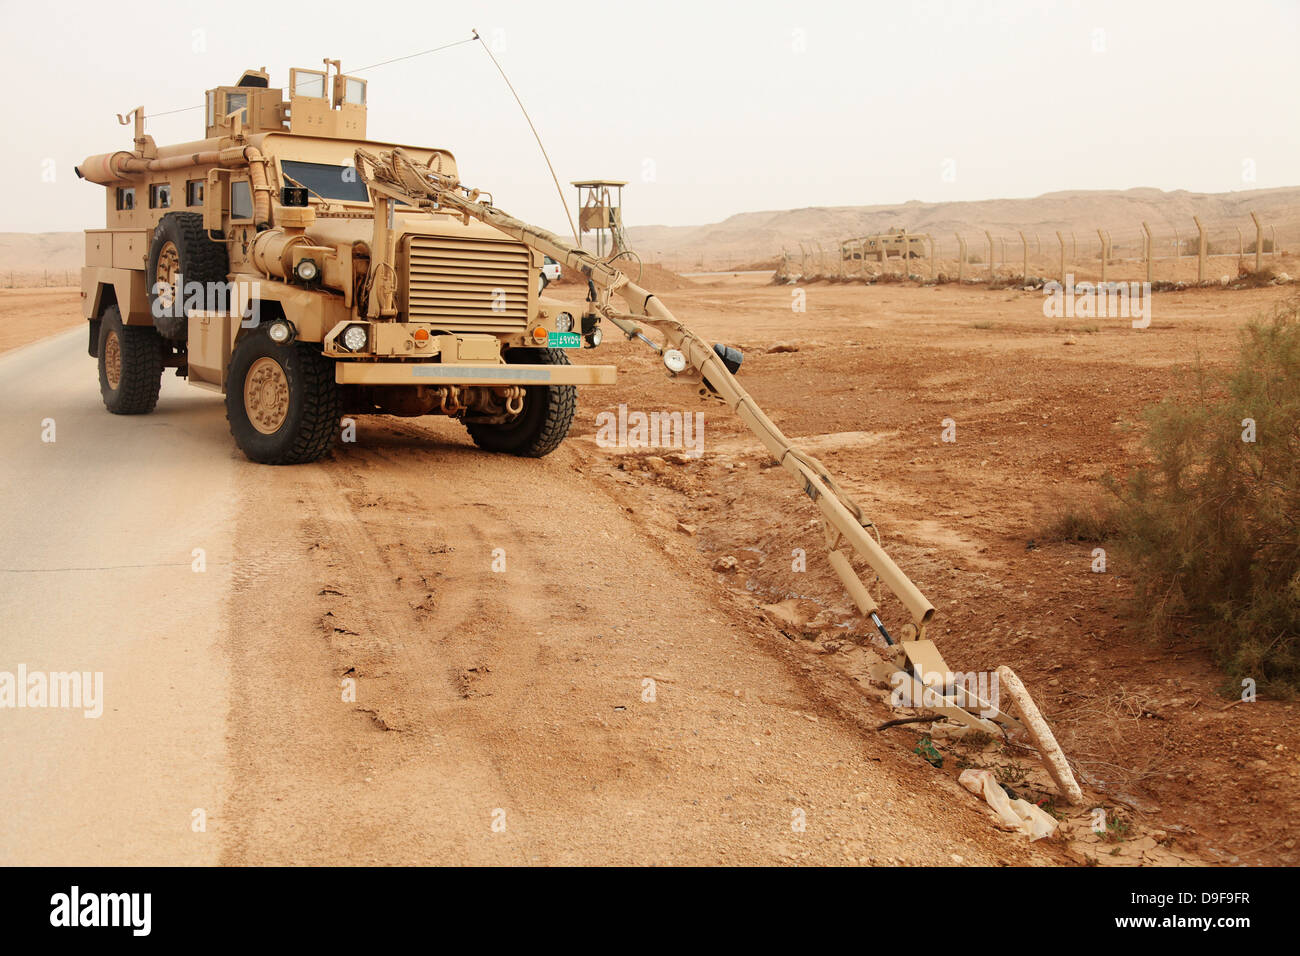 A MRAP vehicle disassembles an improvised explosive device. - Stock Image